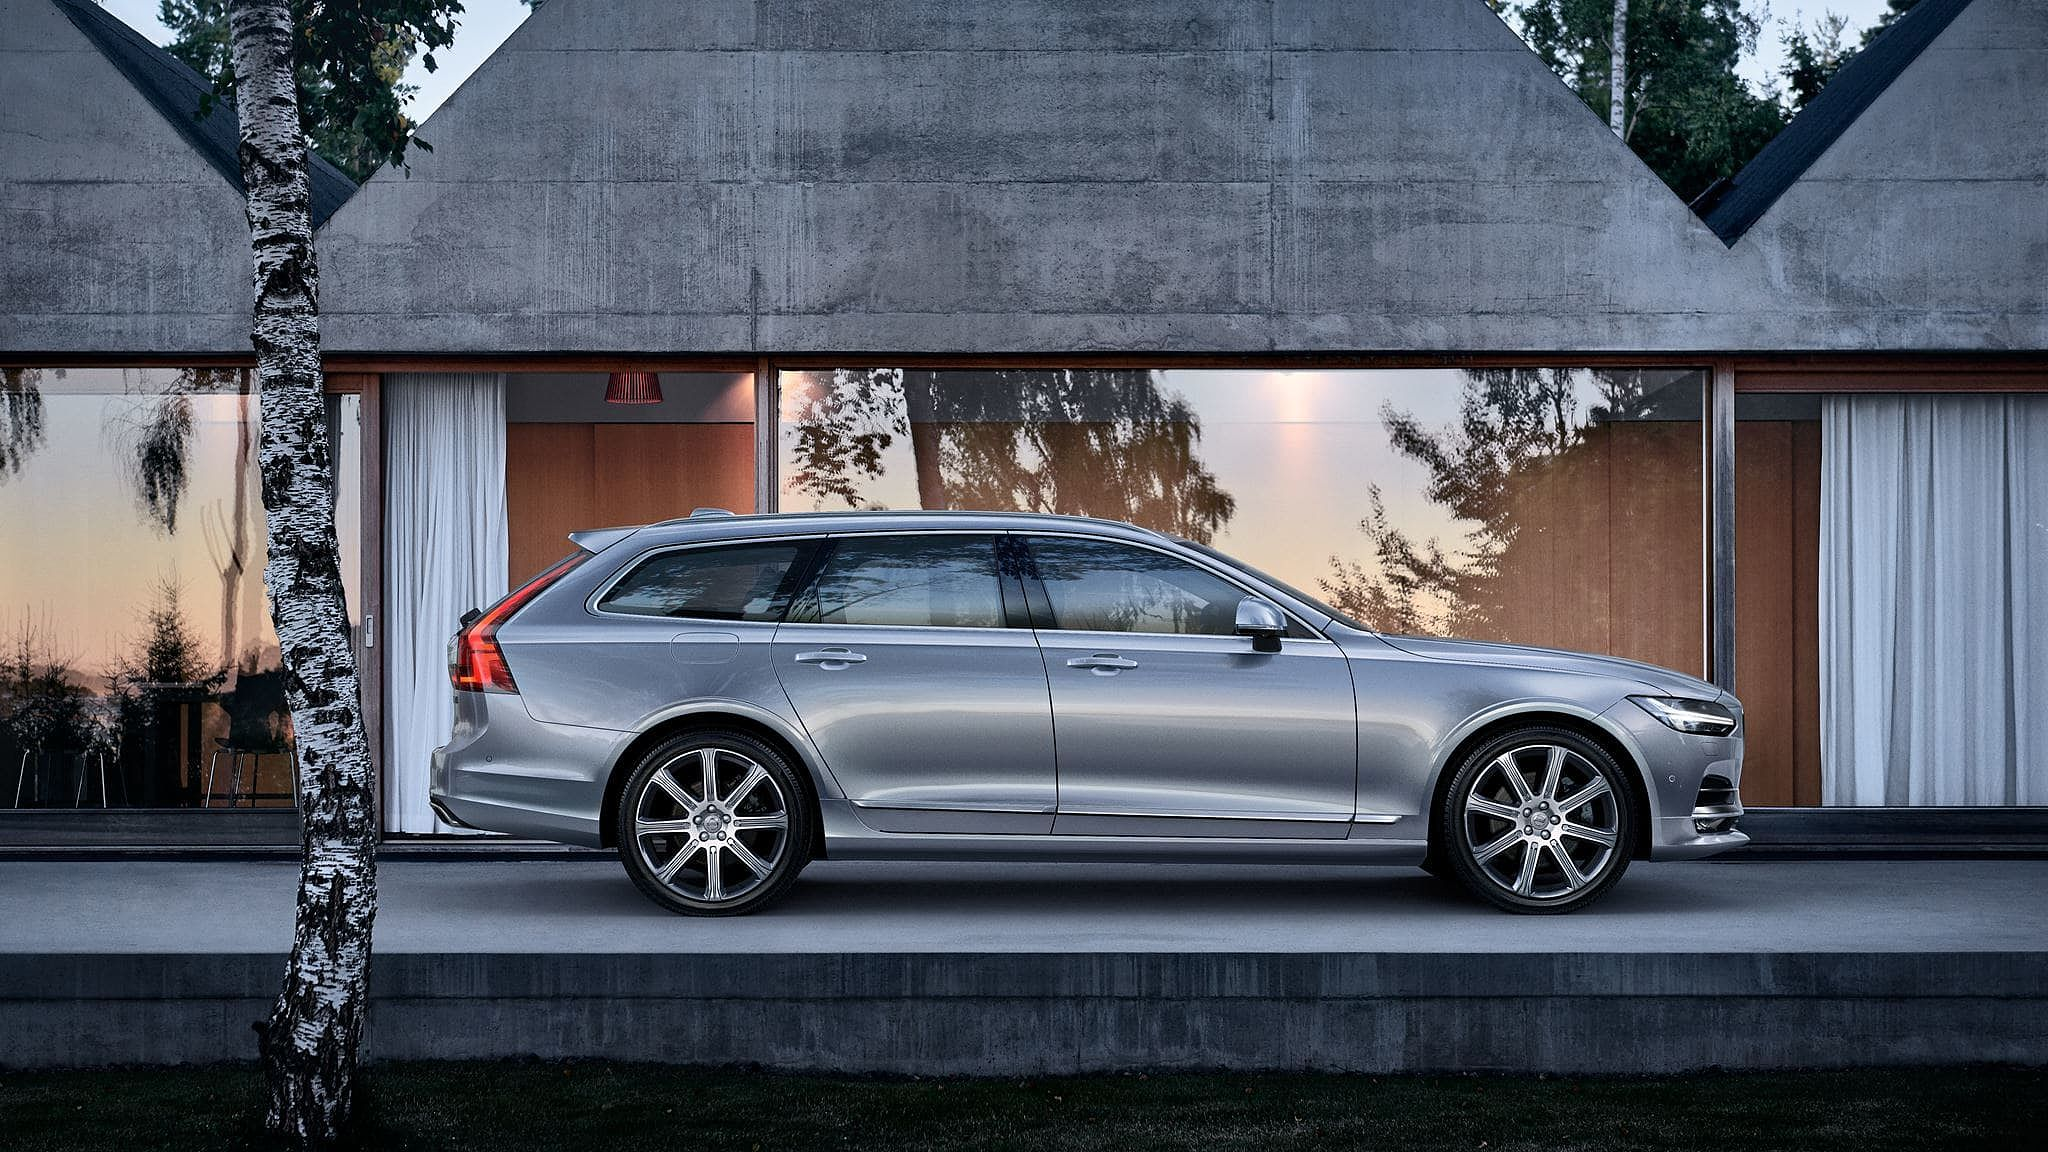 Volvo Selekt V90 with 2 years complementary servicing